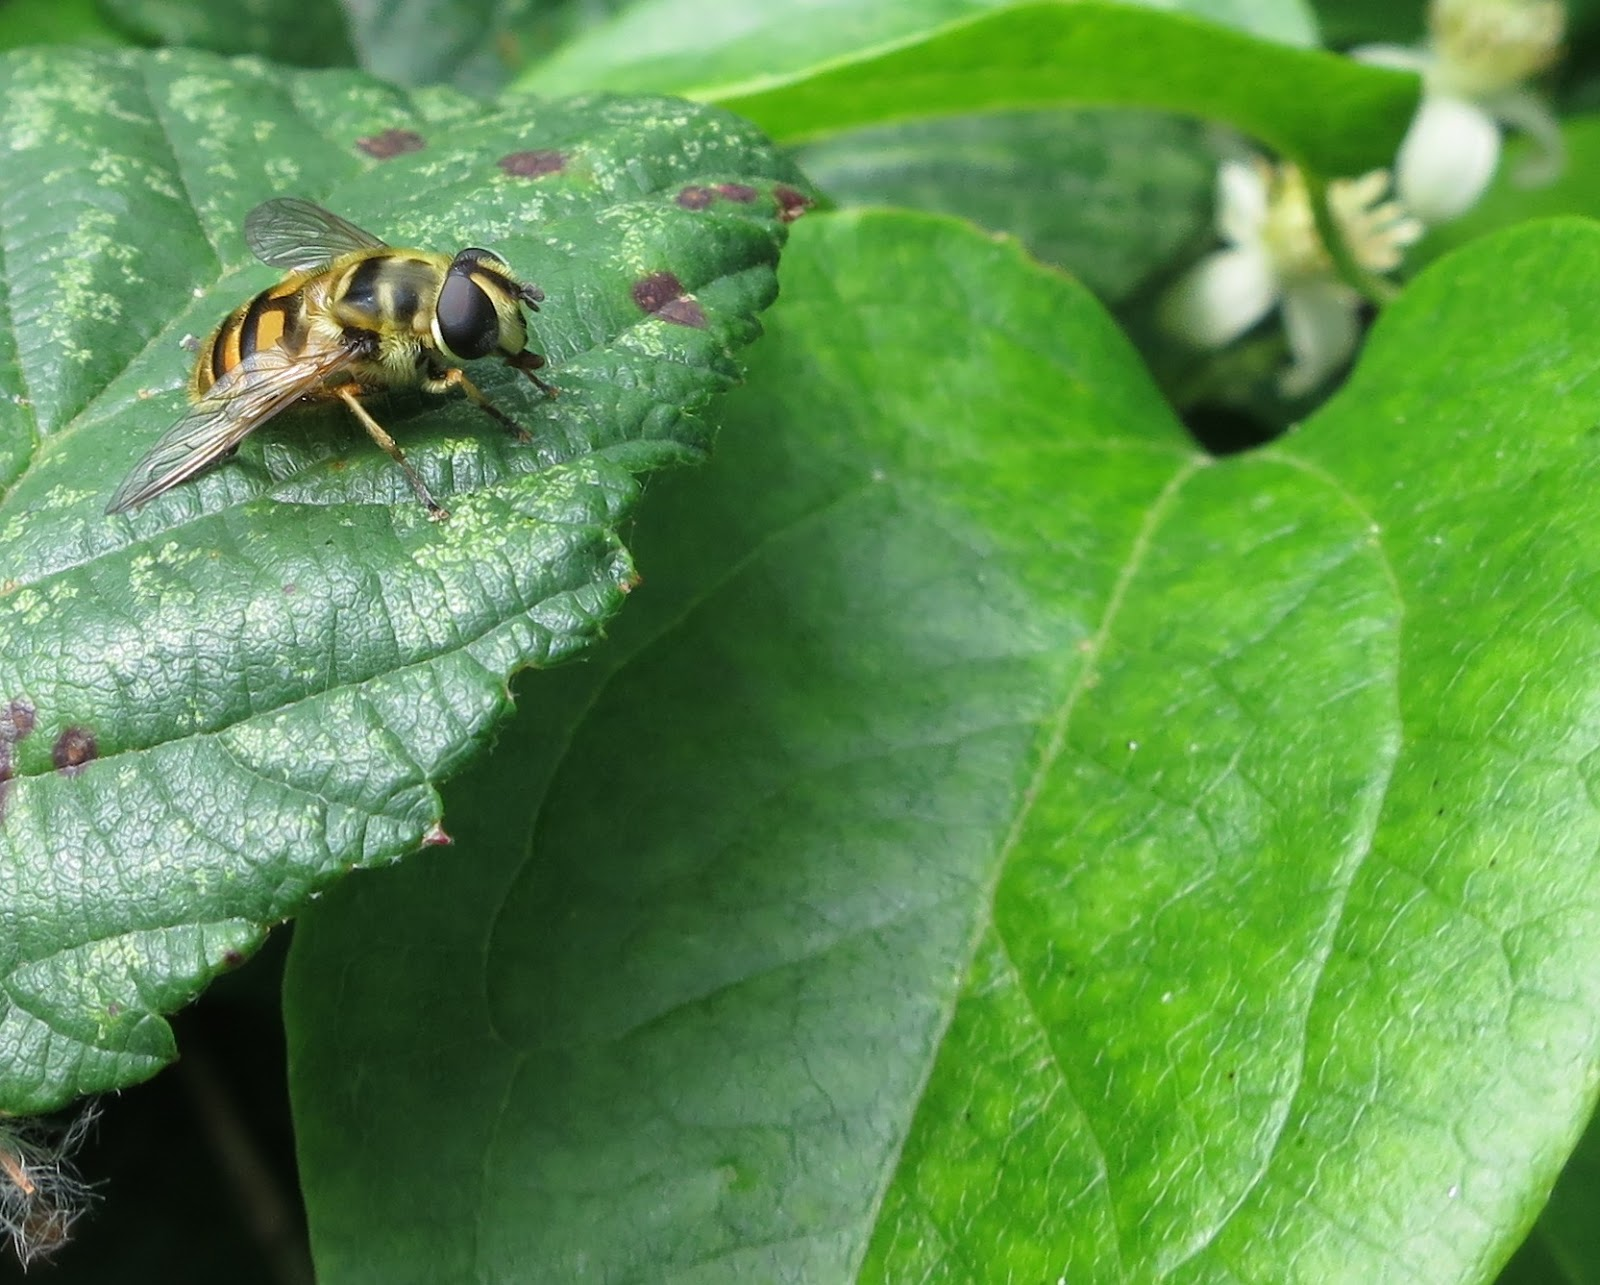 Hoverfly on bramble leaf next to wild clematis leaf and flower